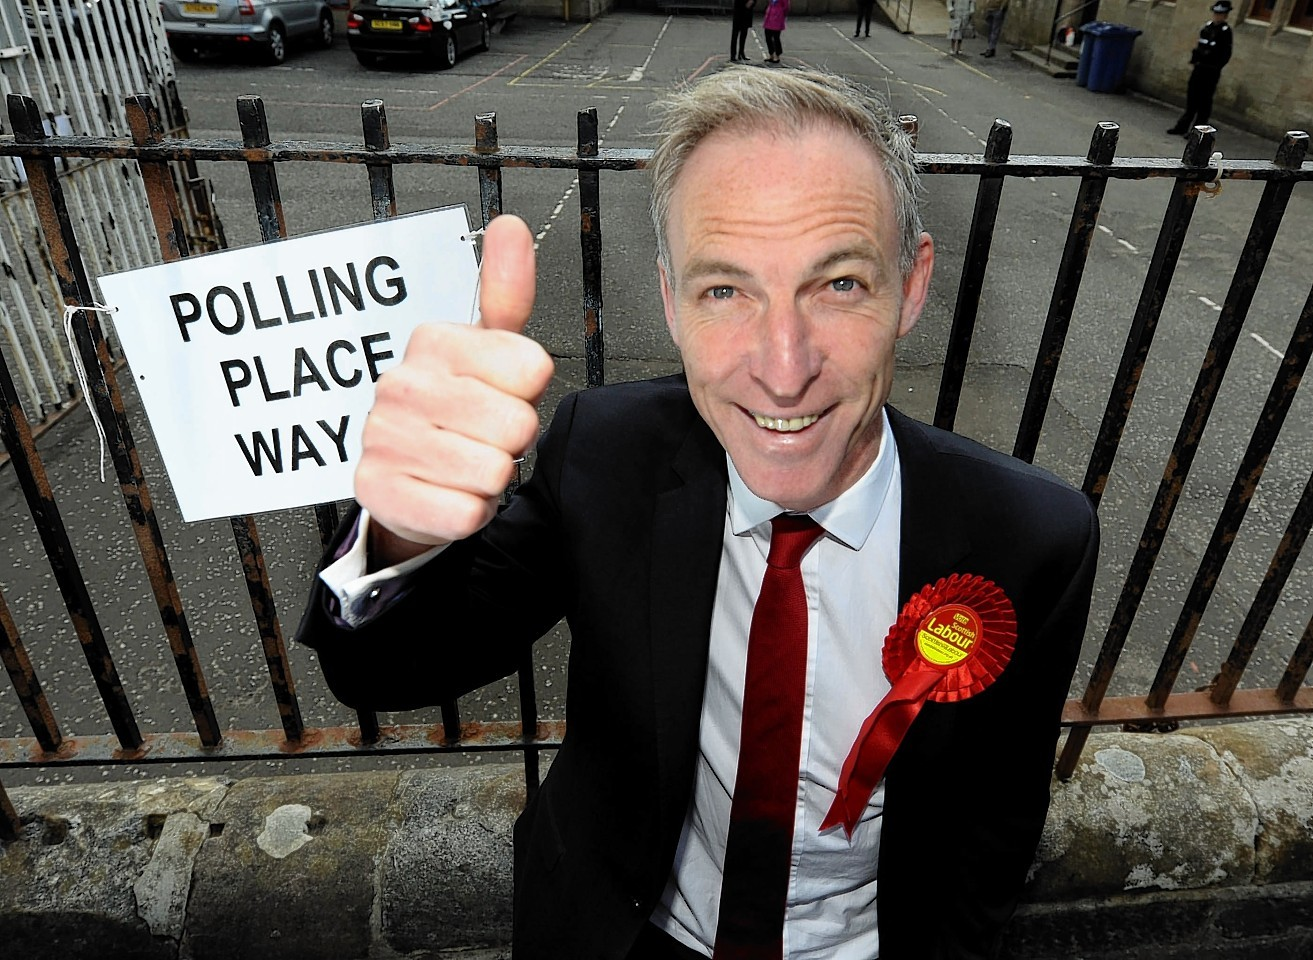 Then Scottish Labour Leader Jim Murphy who lost his seat in the election